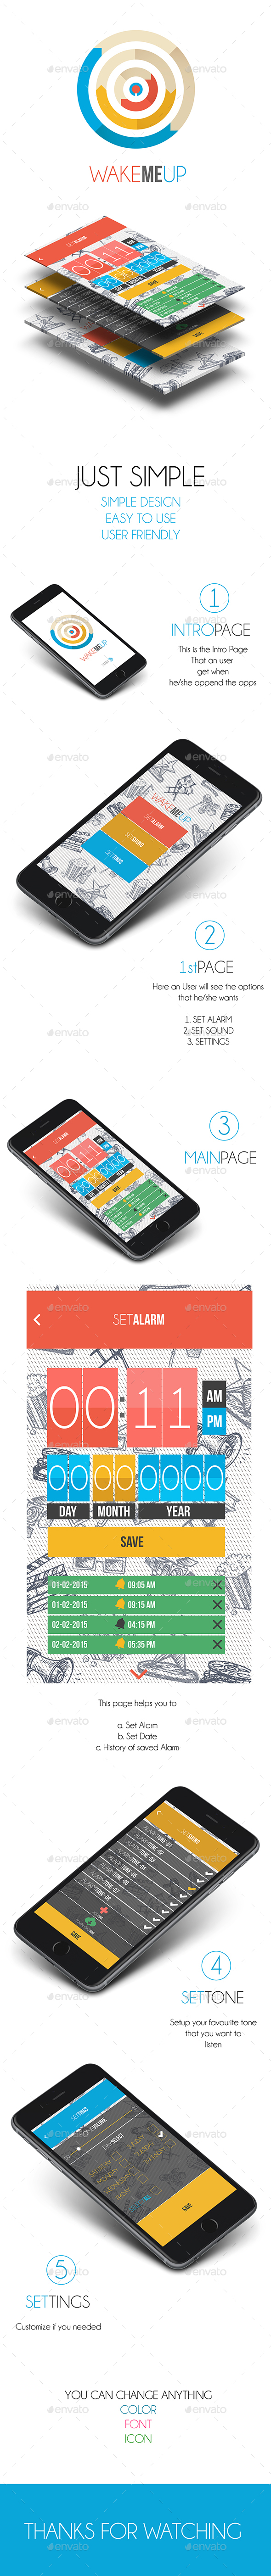 Alarm Application (User Interface Design) - User Interfaces Web Elements